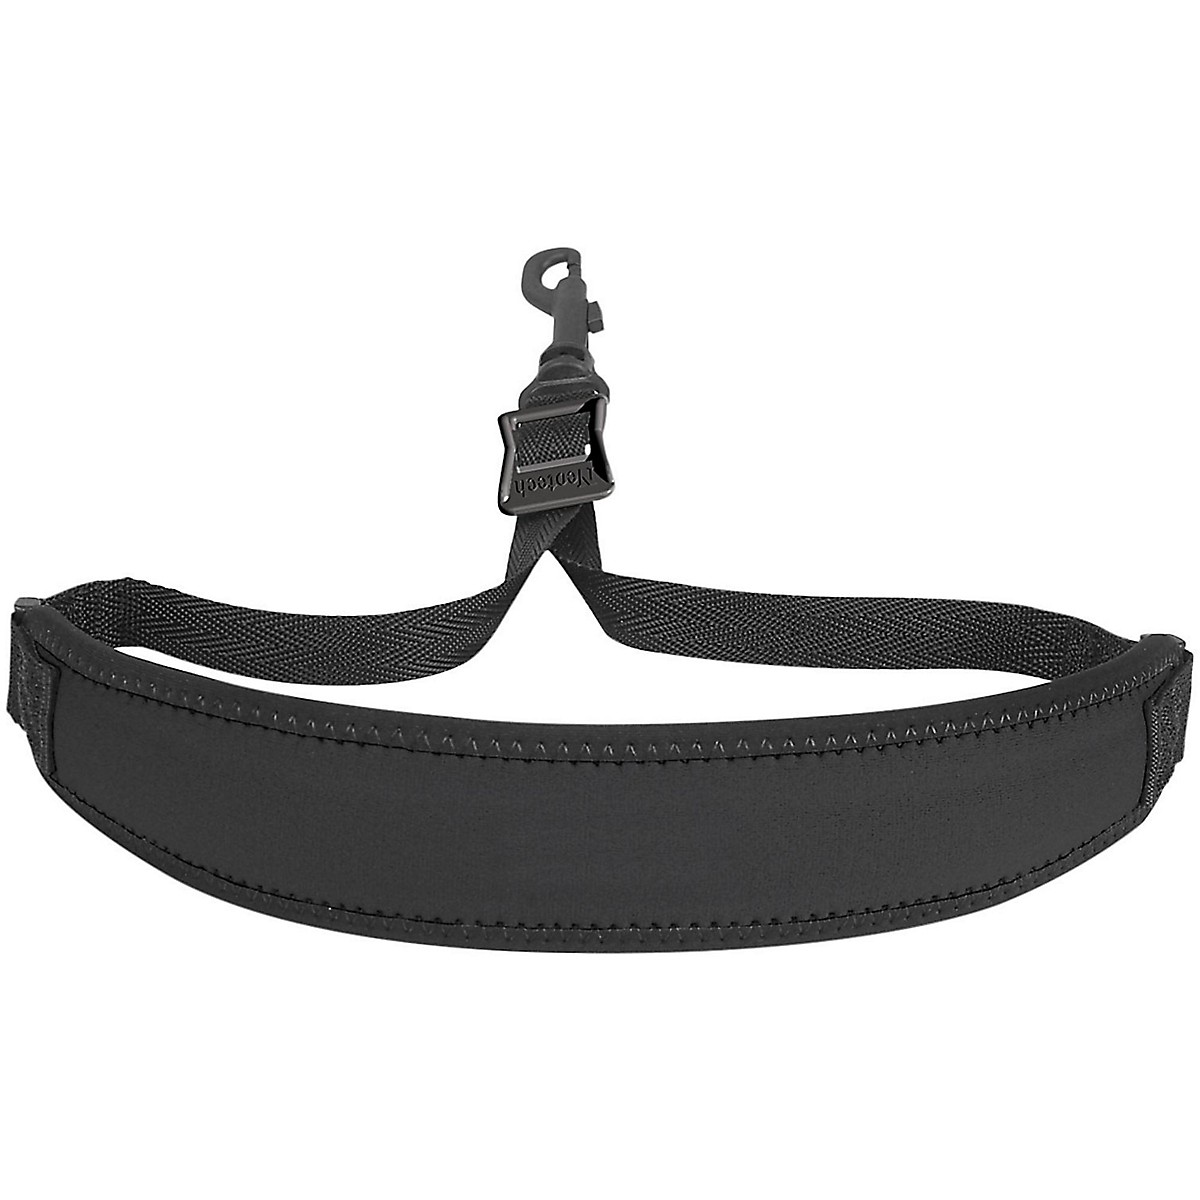 Neotech Classic Strap